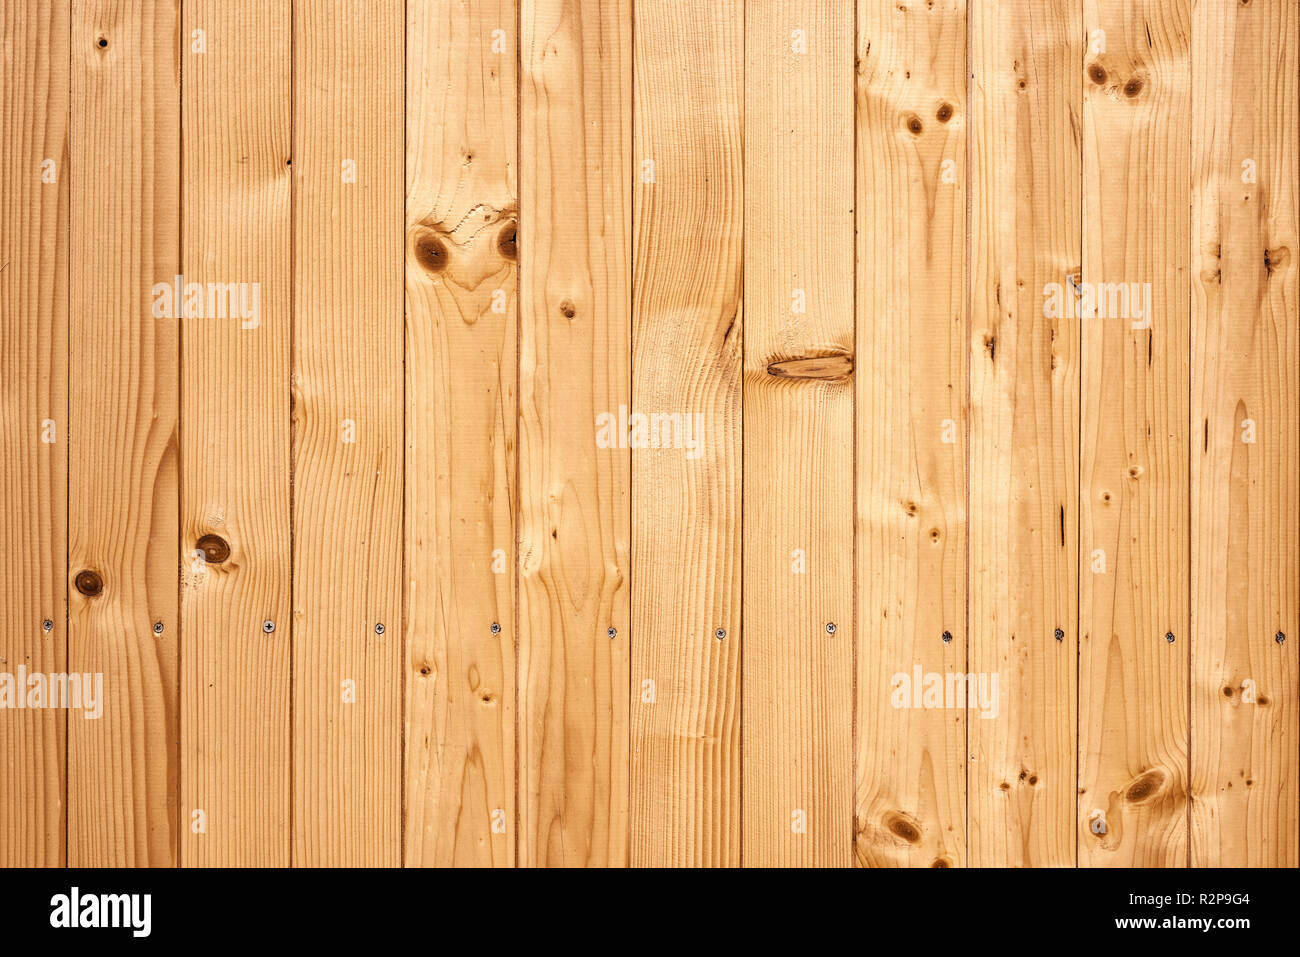 Brown wooden planks surface texture as background - Stock Image